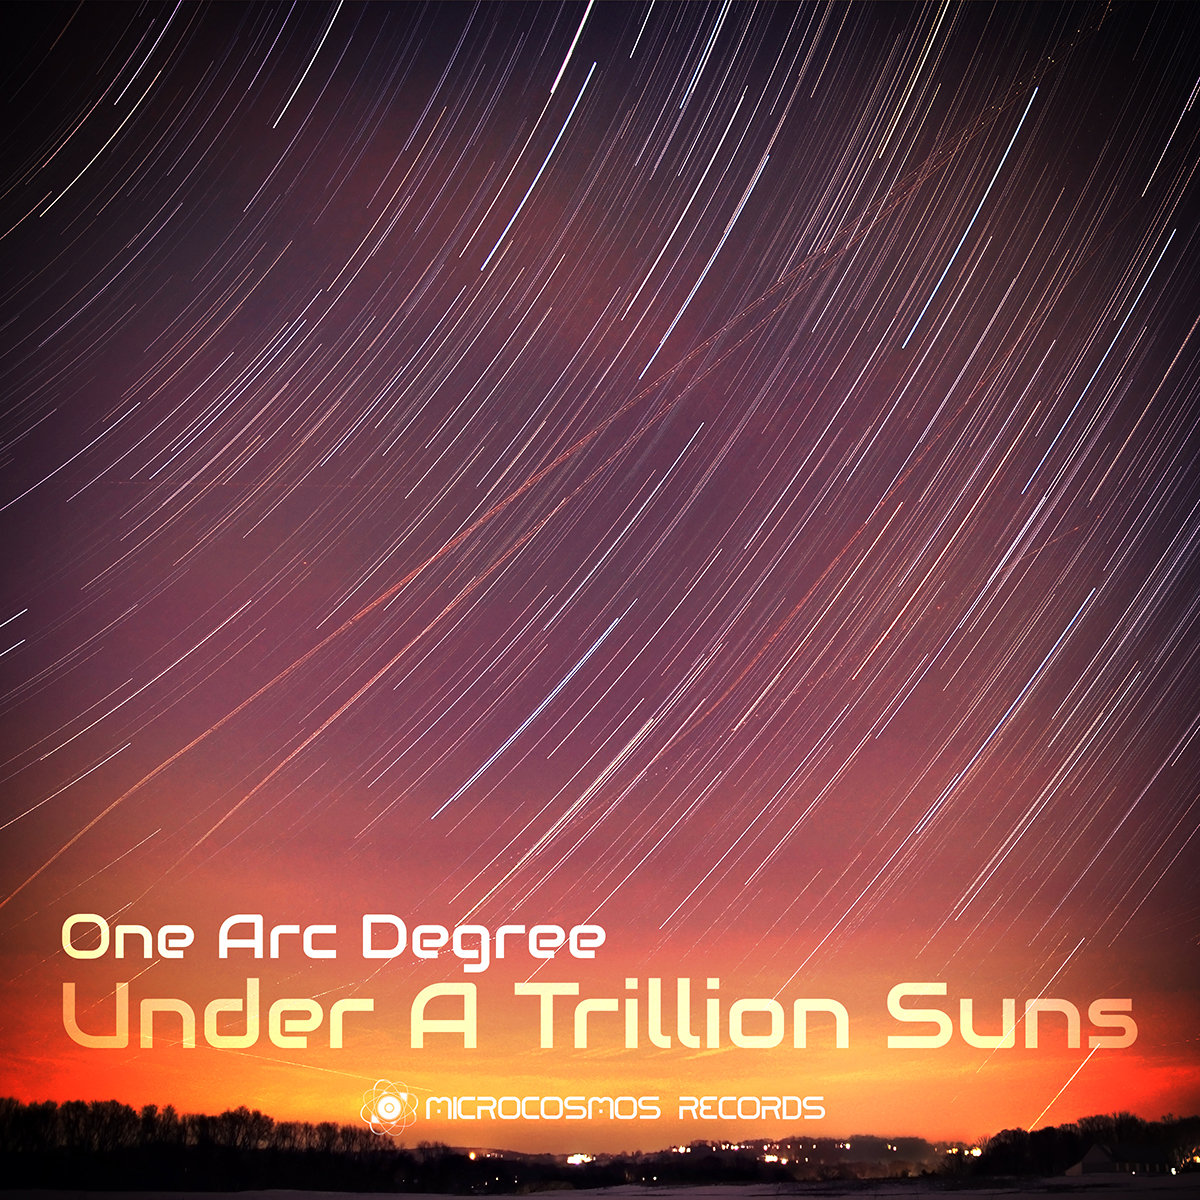 One Arc Degree - For The Love Of Despair @ 'Under A Trillion Suns' album (ambient, chill-out)